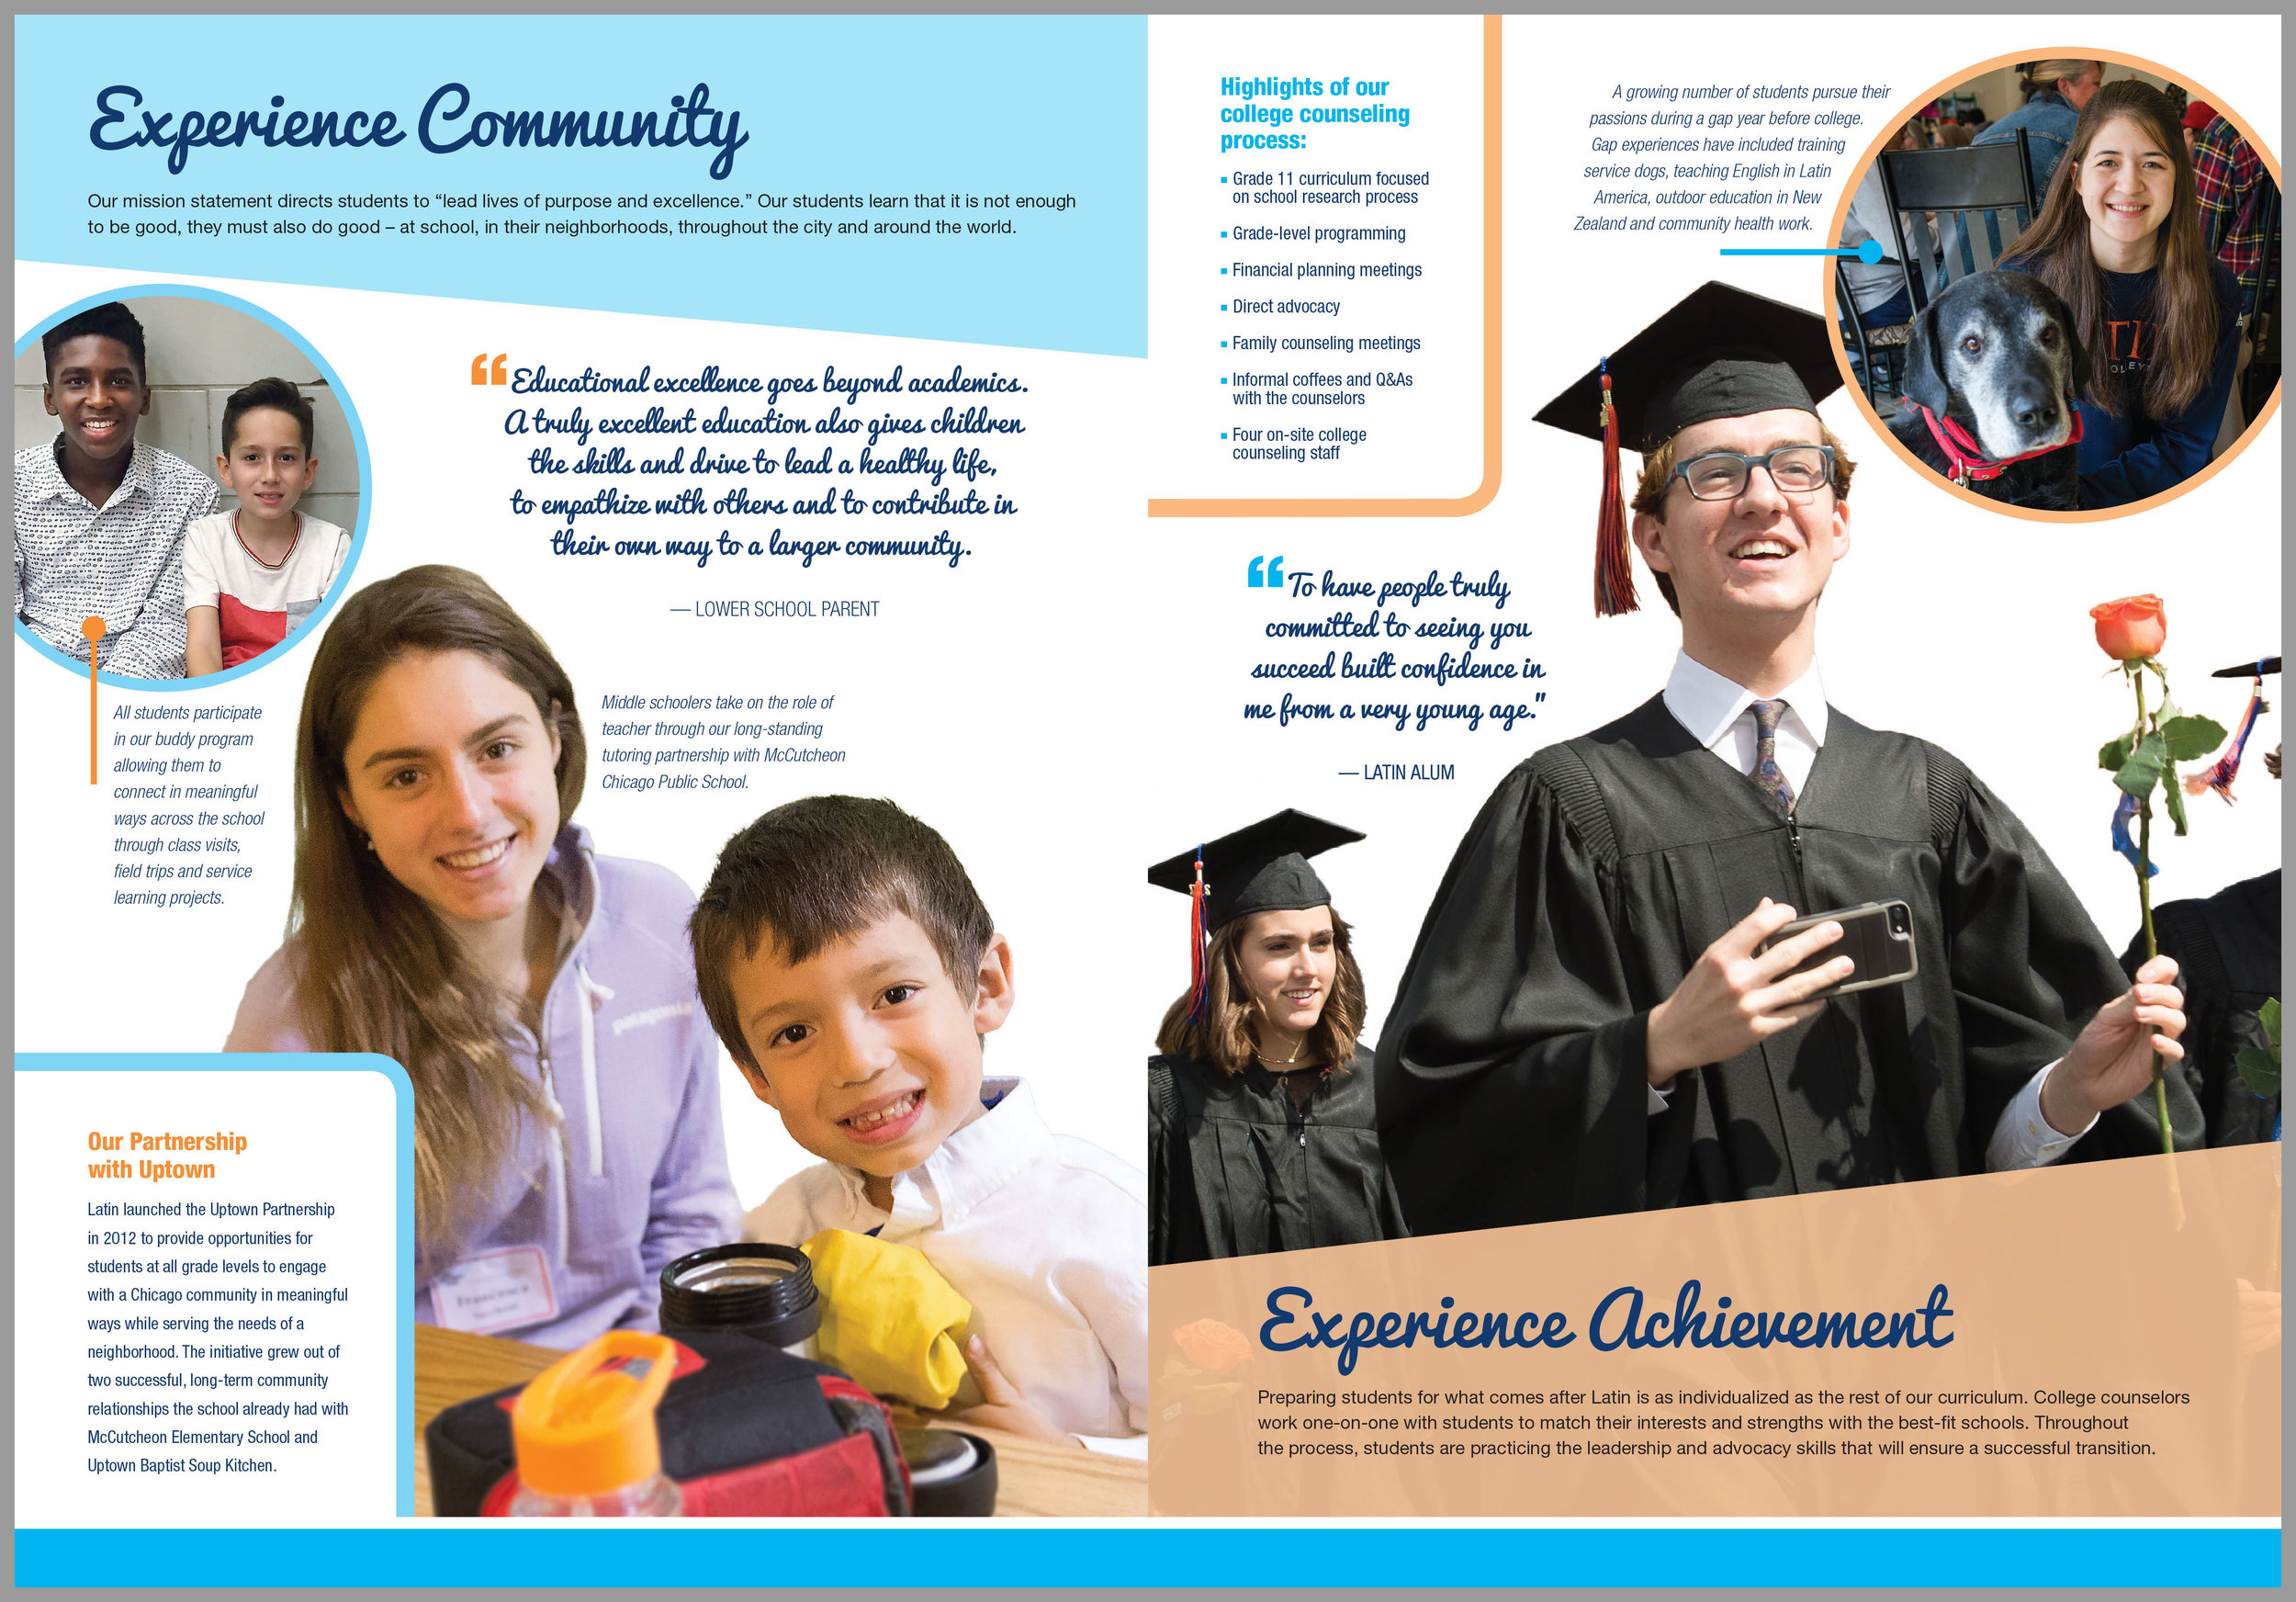 Experience Community describes Latin's commitment to Community Service. Experience Achievement shows to what a Latin education can lead.